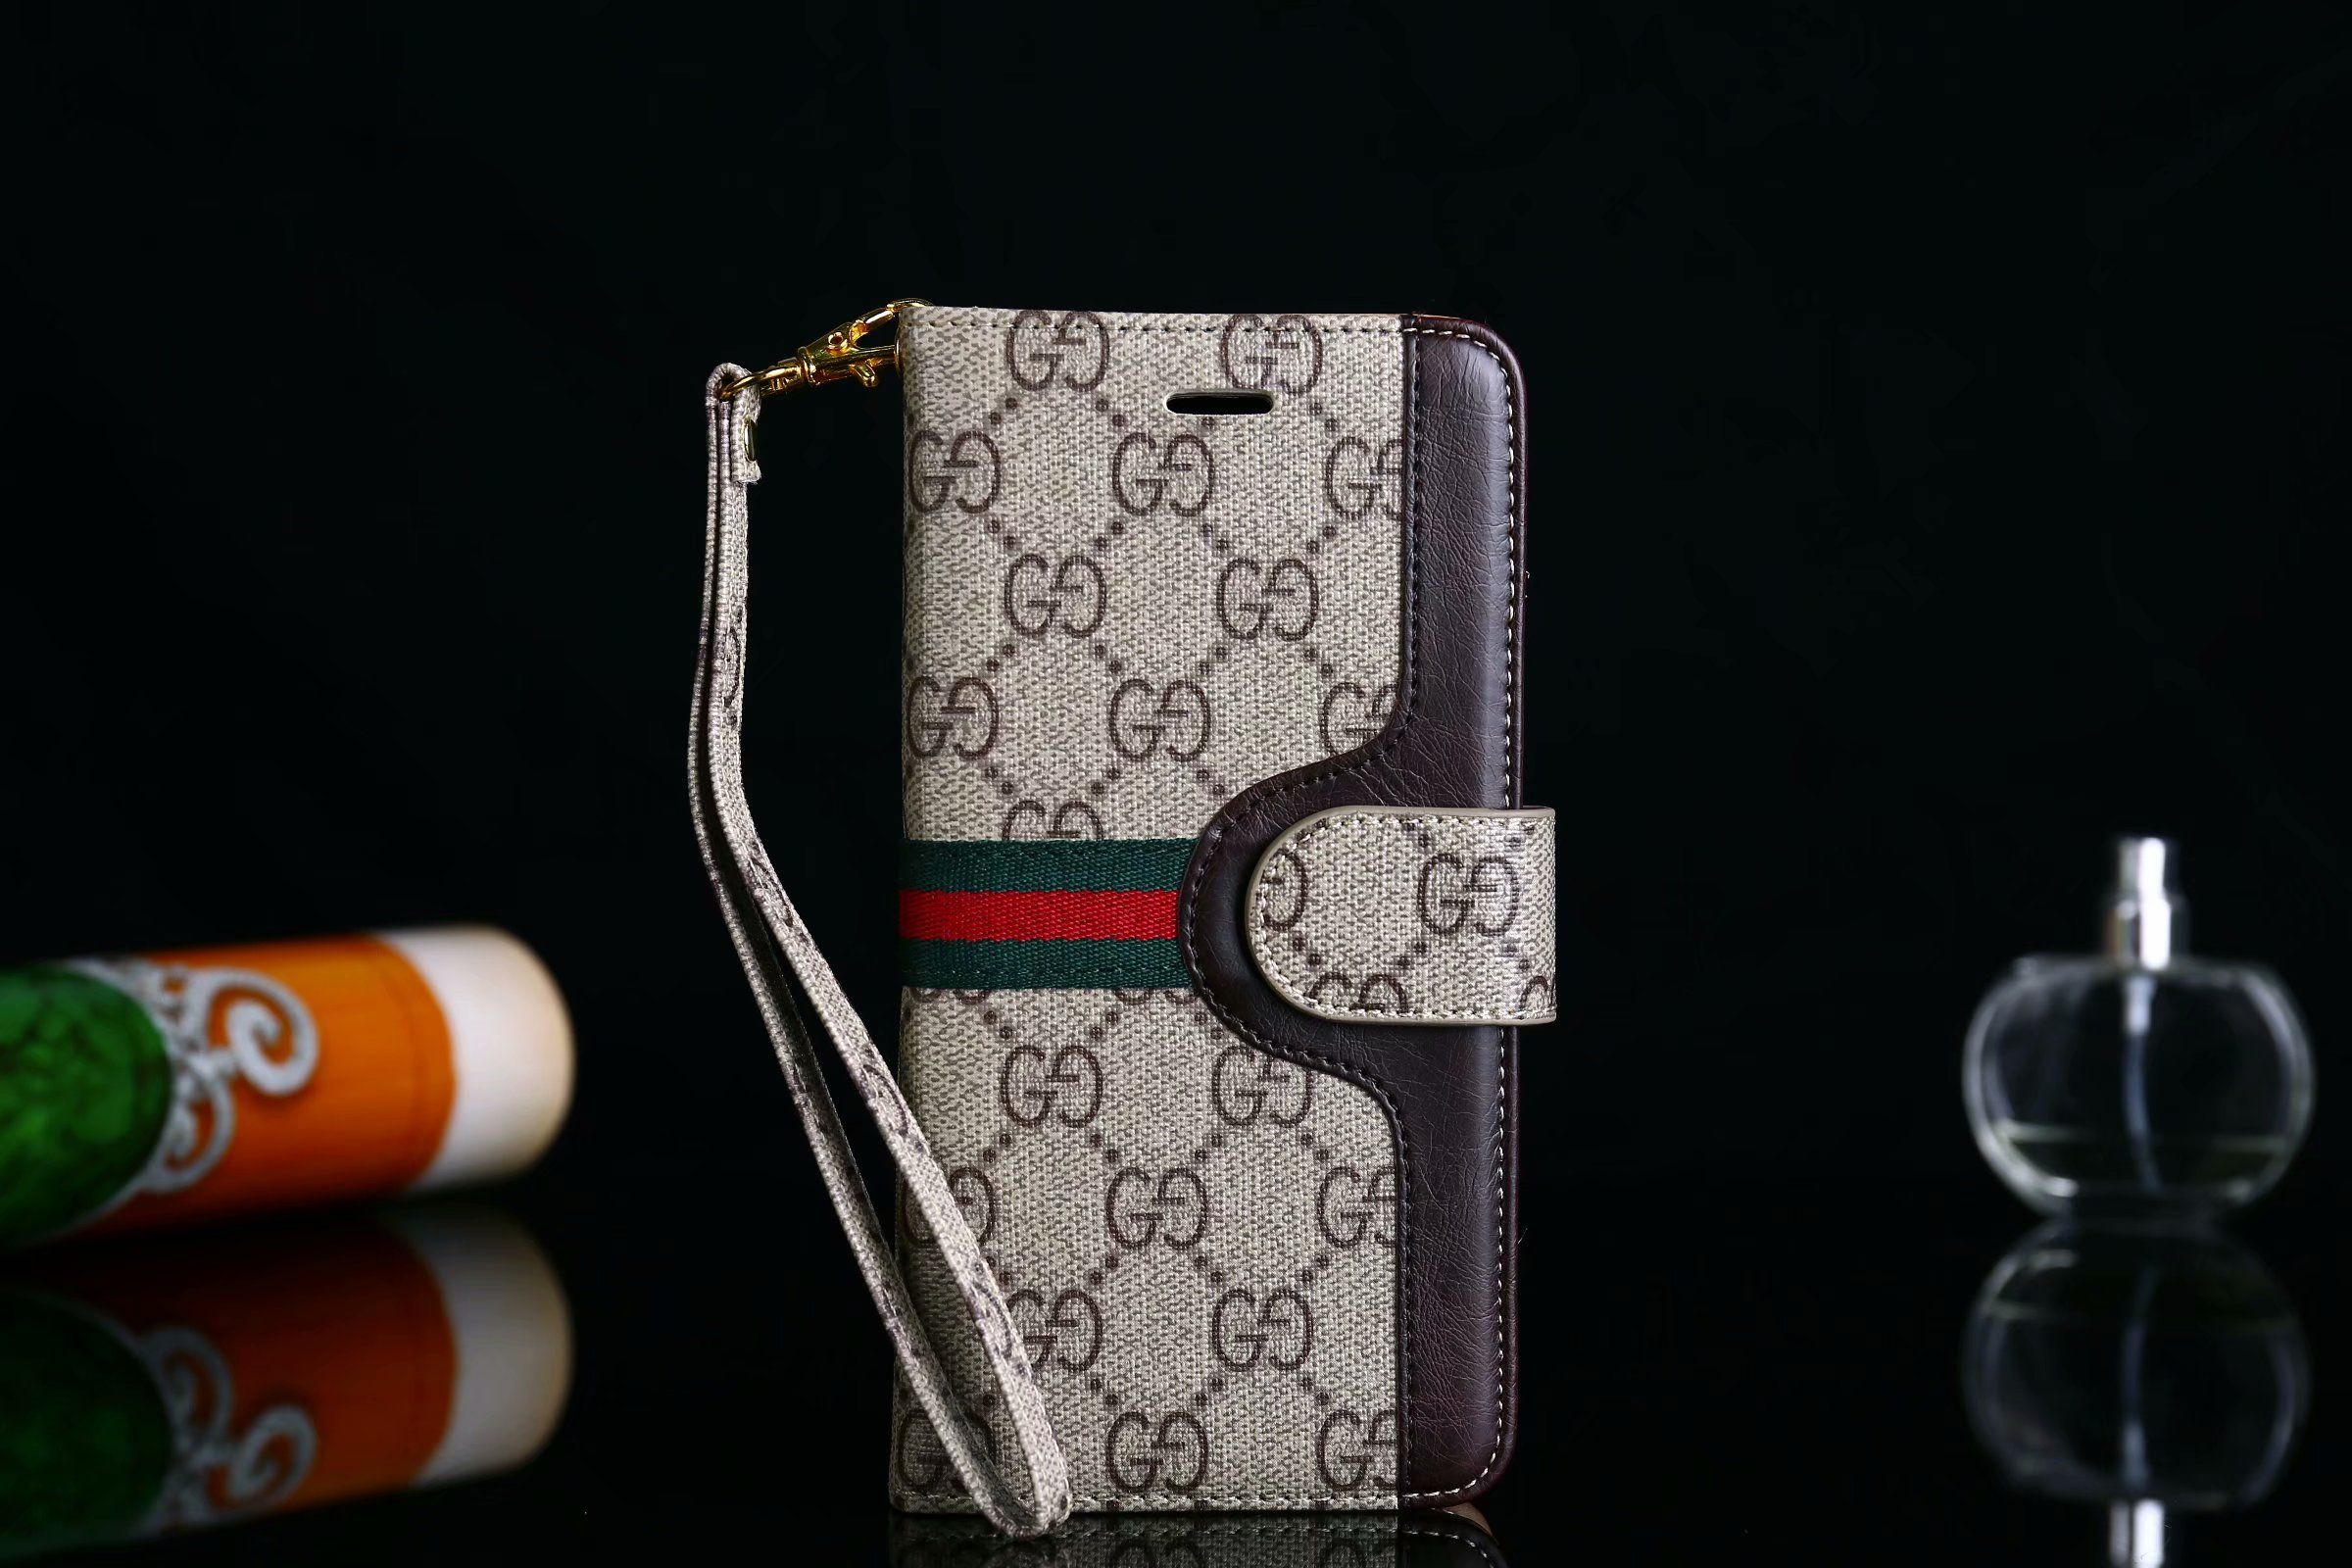 002 gucci wallet phone case for iphone 6 7 8 plus xr x xs